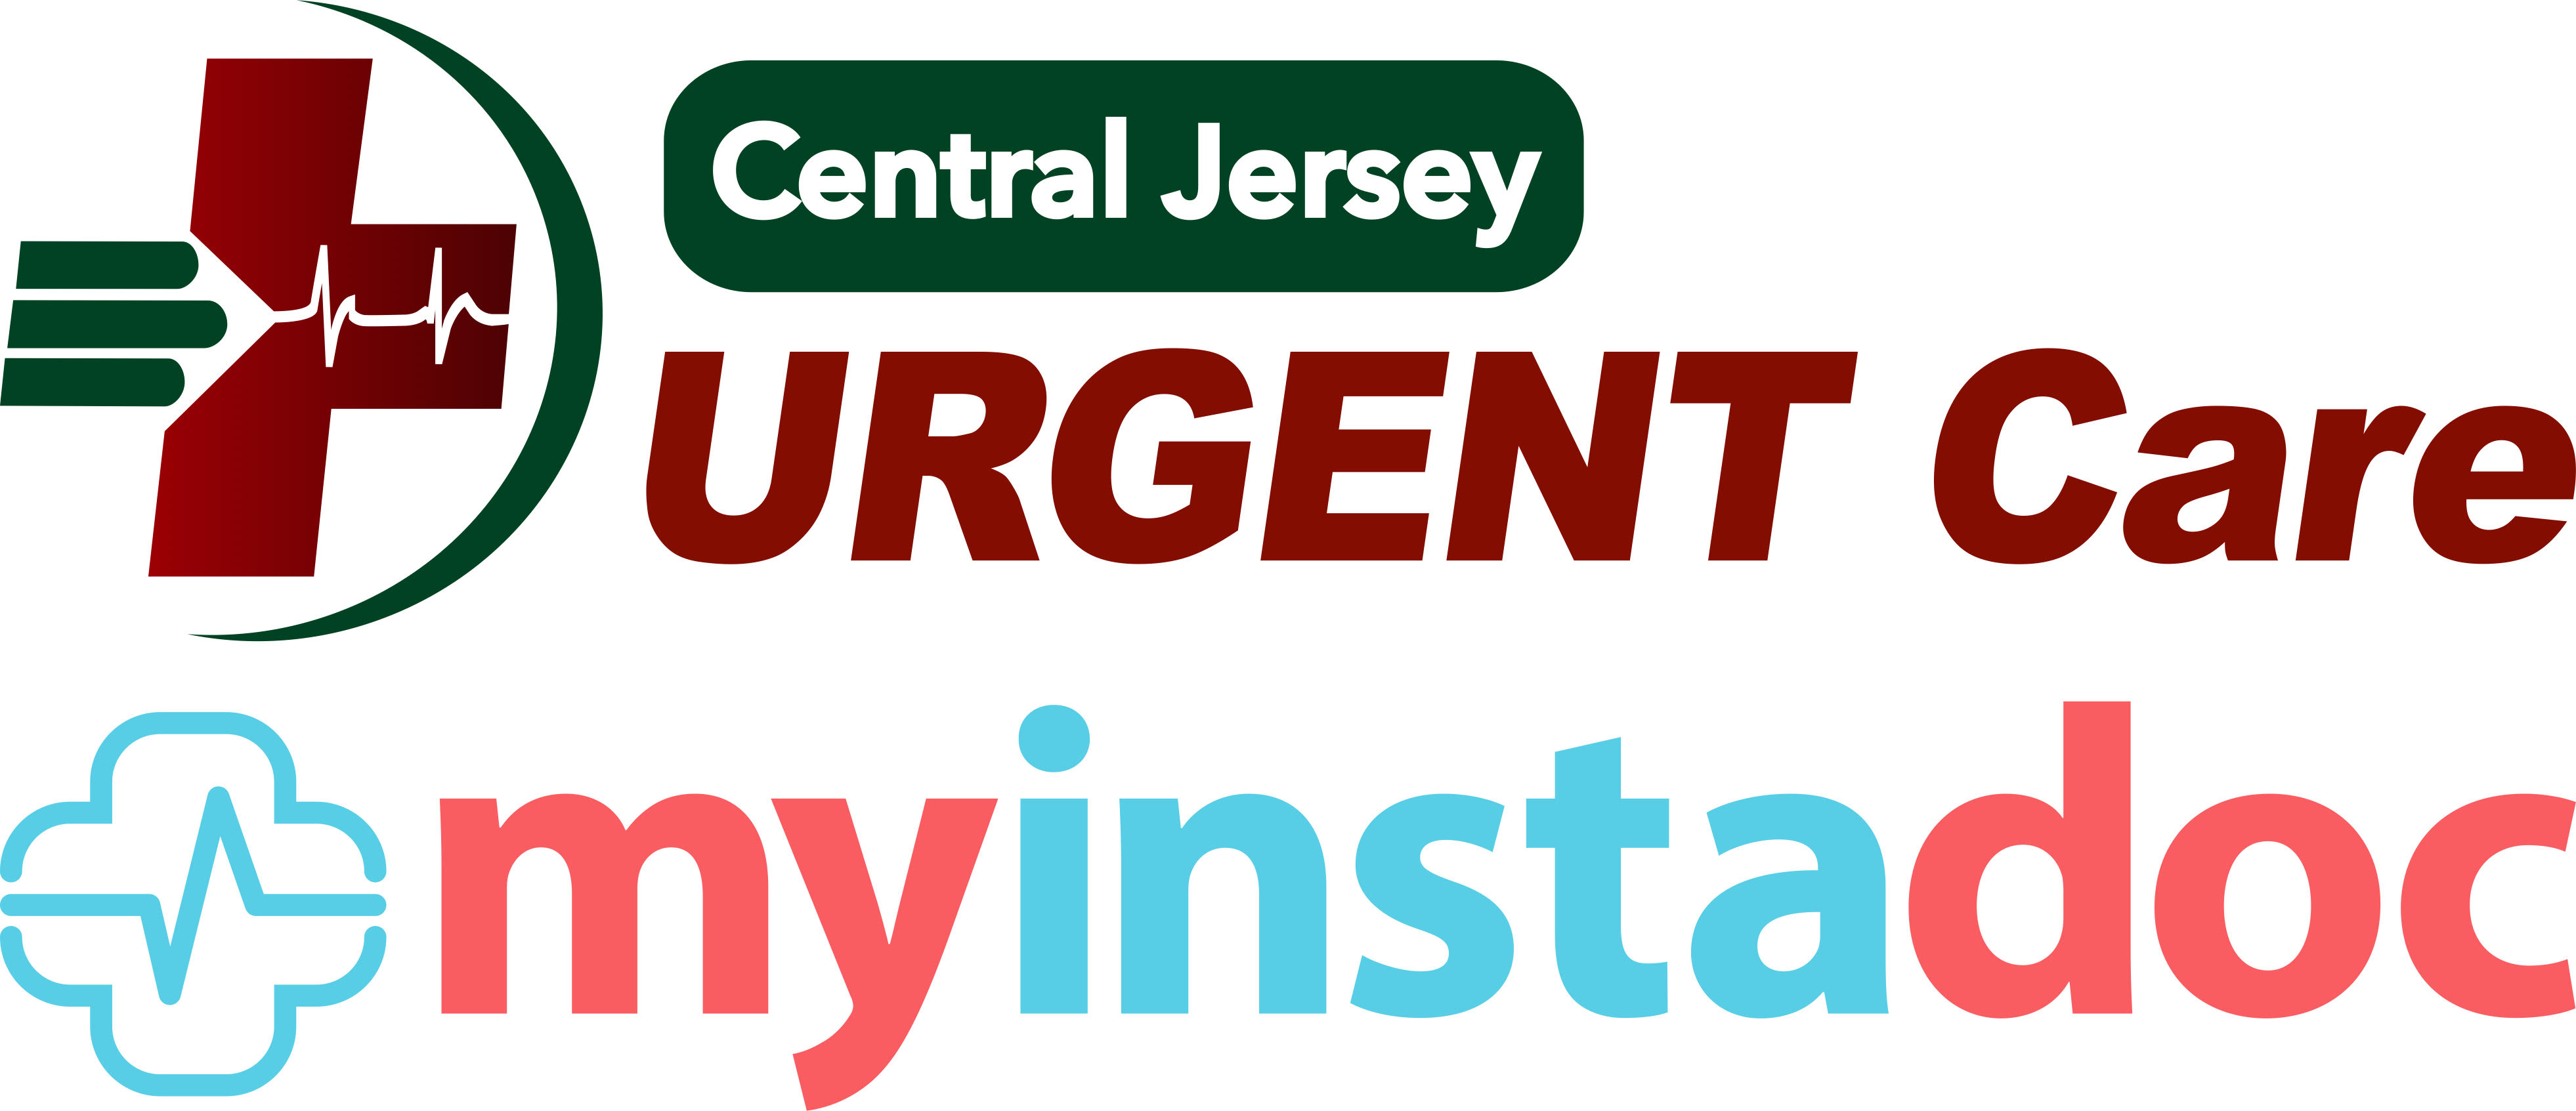 Central Jersey Urgent Care / MyInstadoc of Eatontown